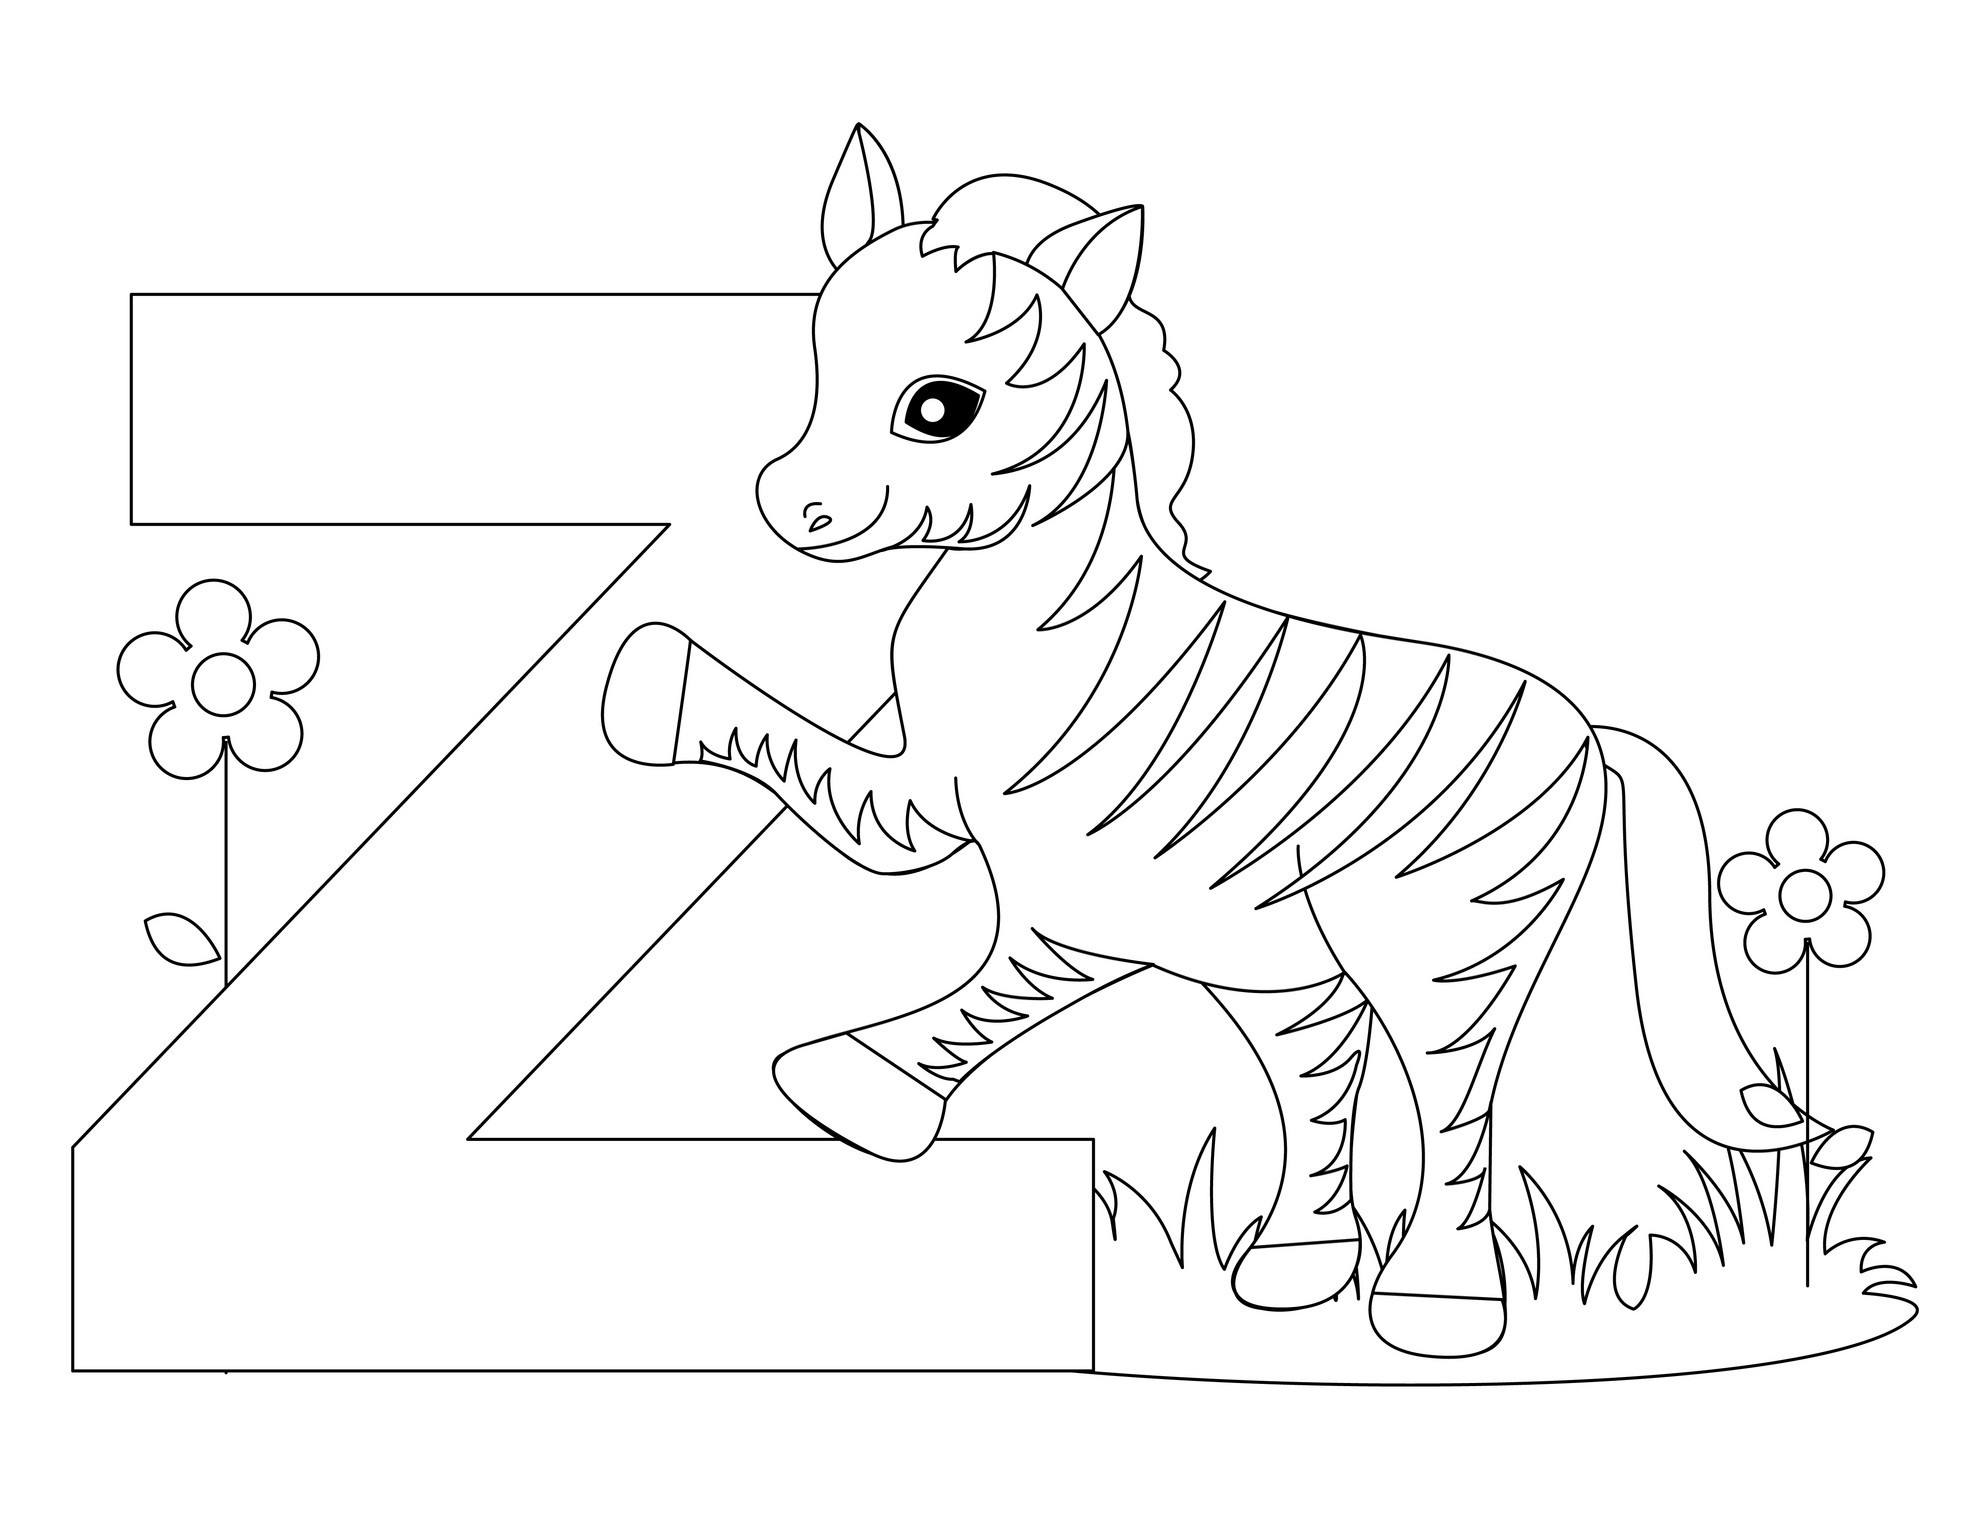 alphebet coloring pages Letter Z Coloring Pages   Castrophotos alphebet coloring pages